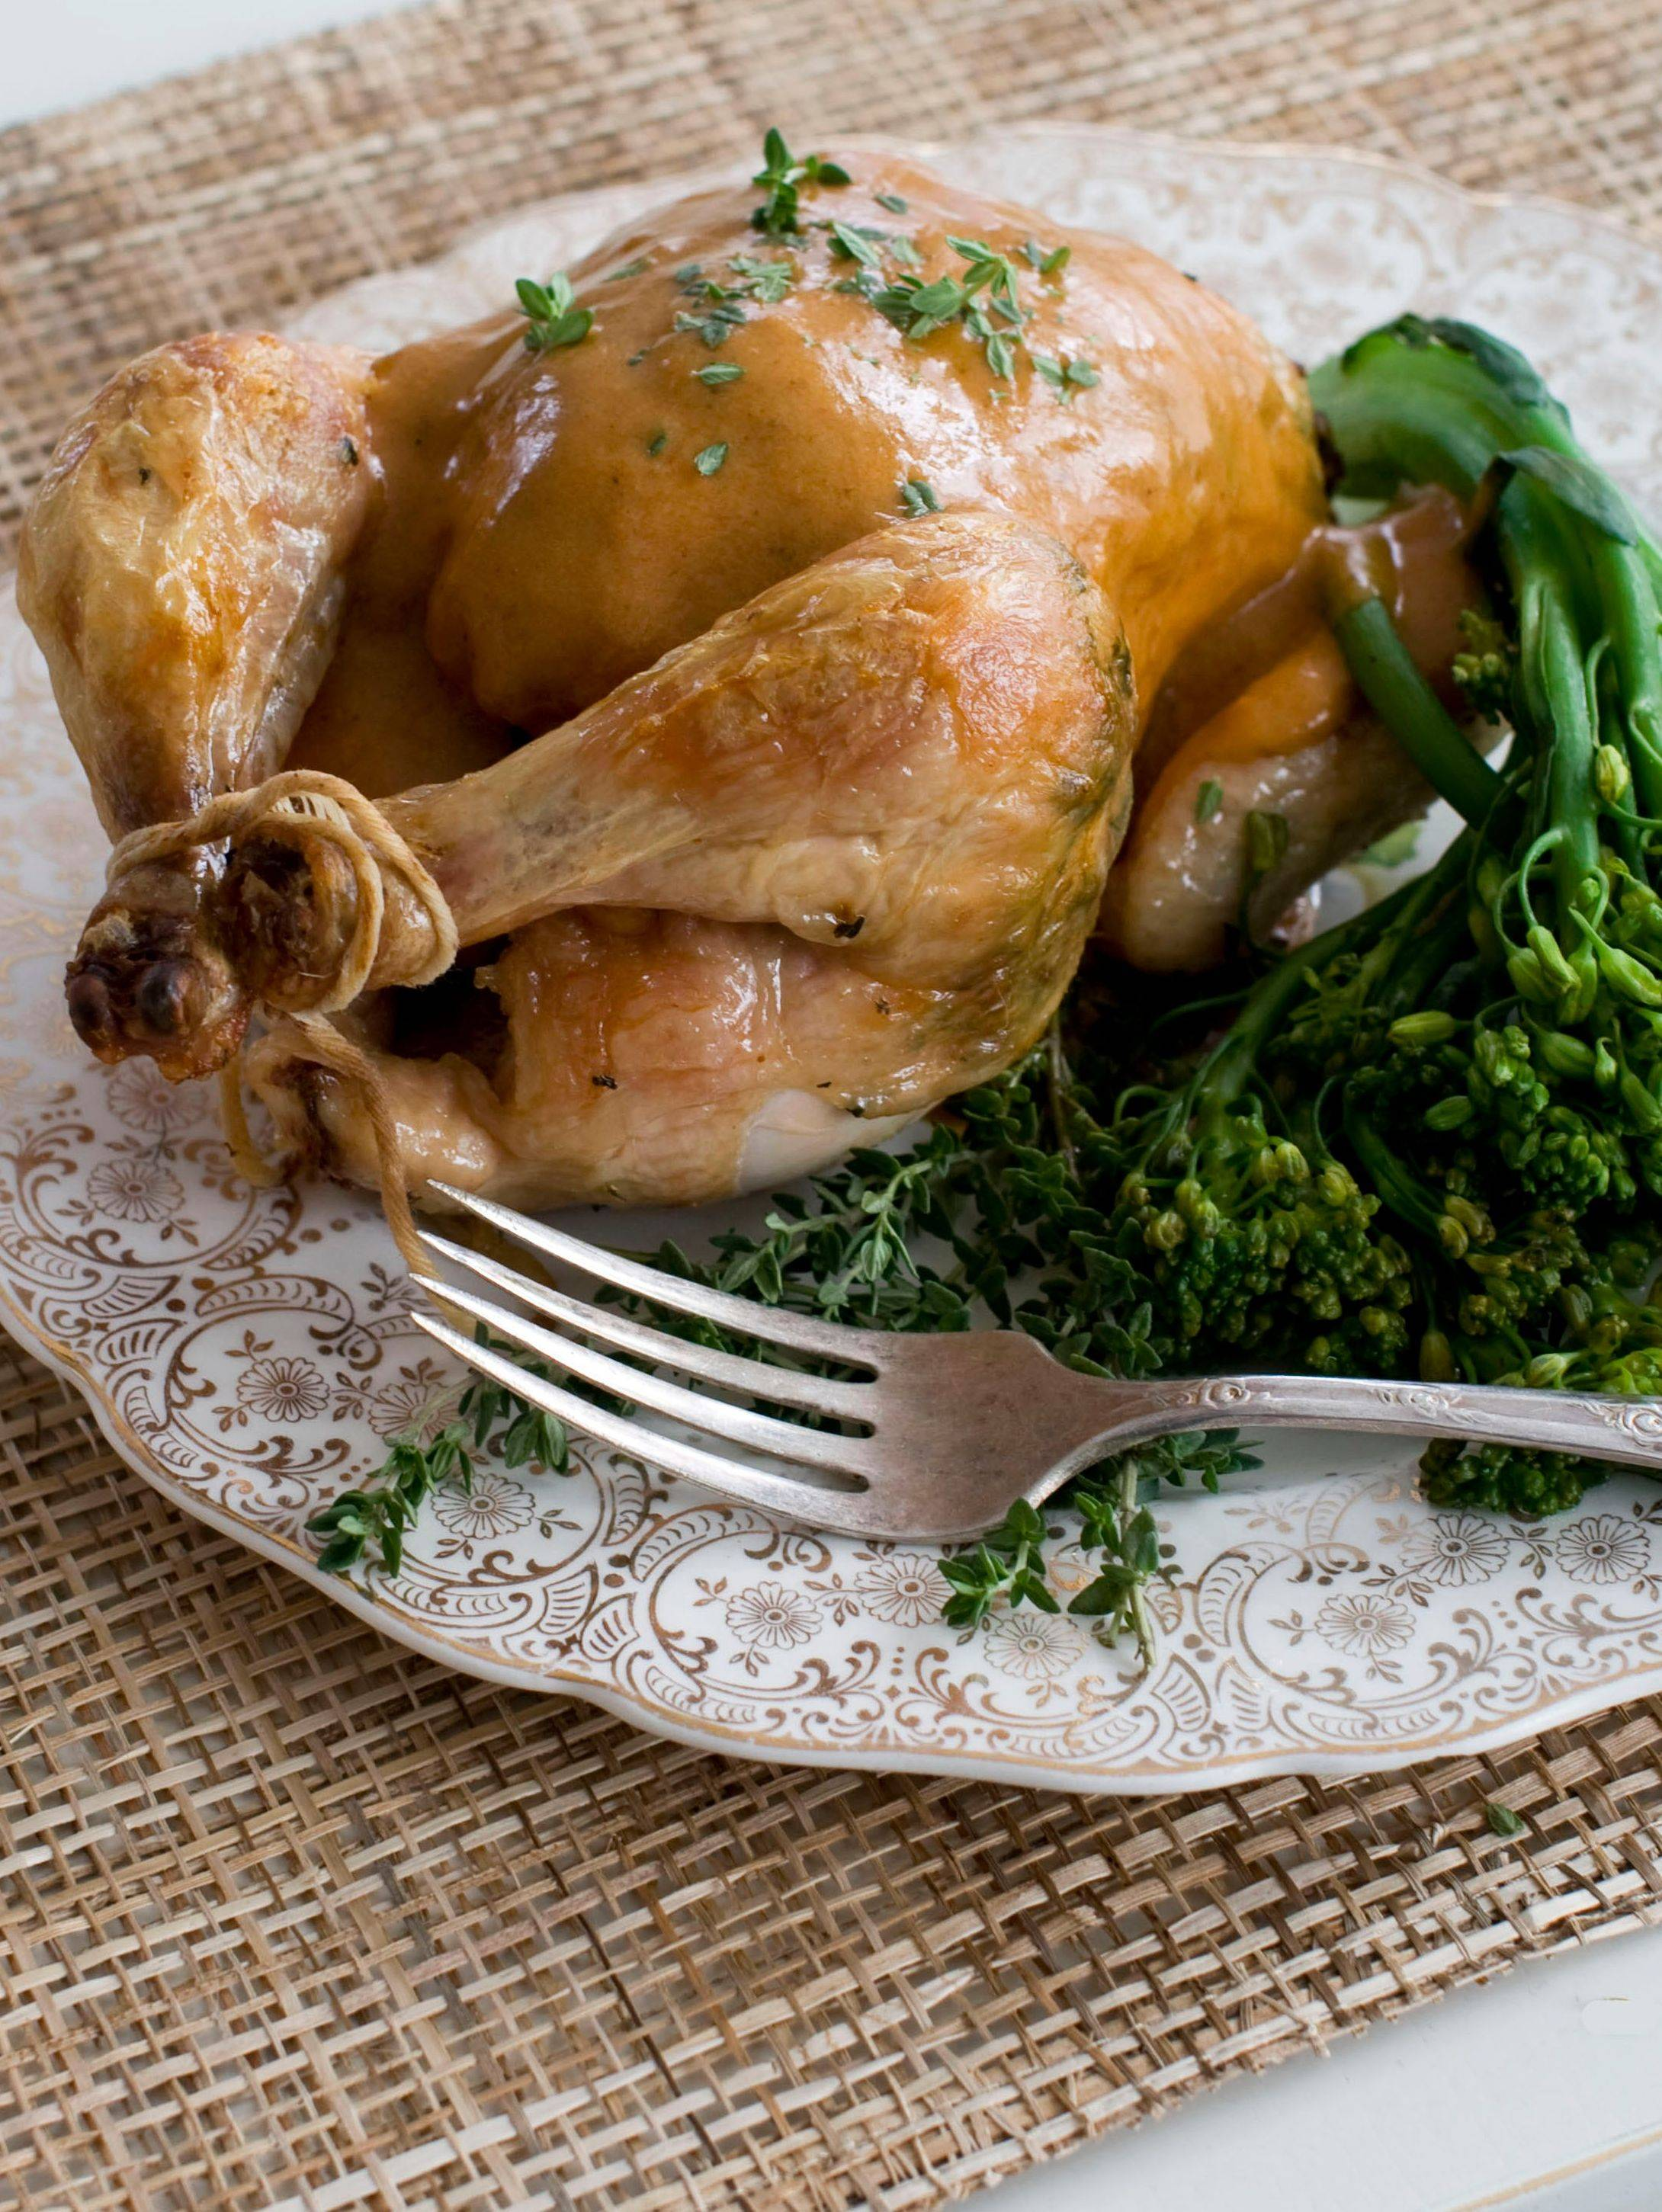 Roast Cornish hens for a small, yet grand holiday Christmas feast